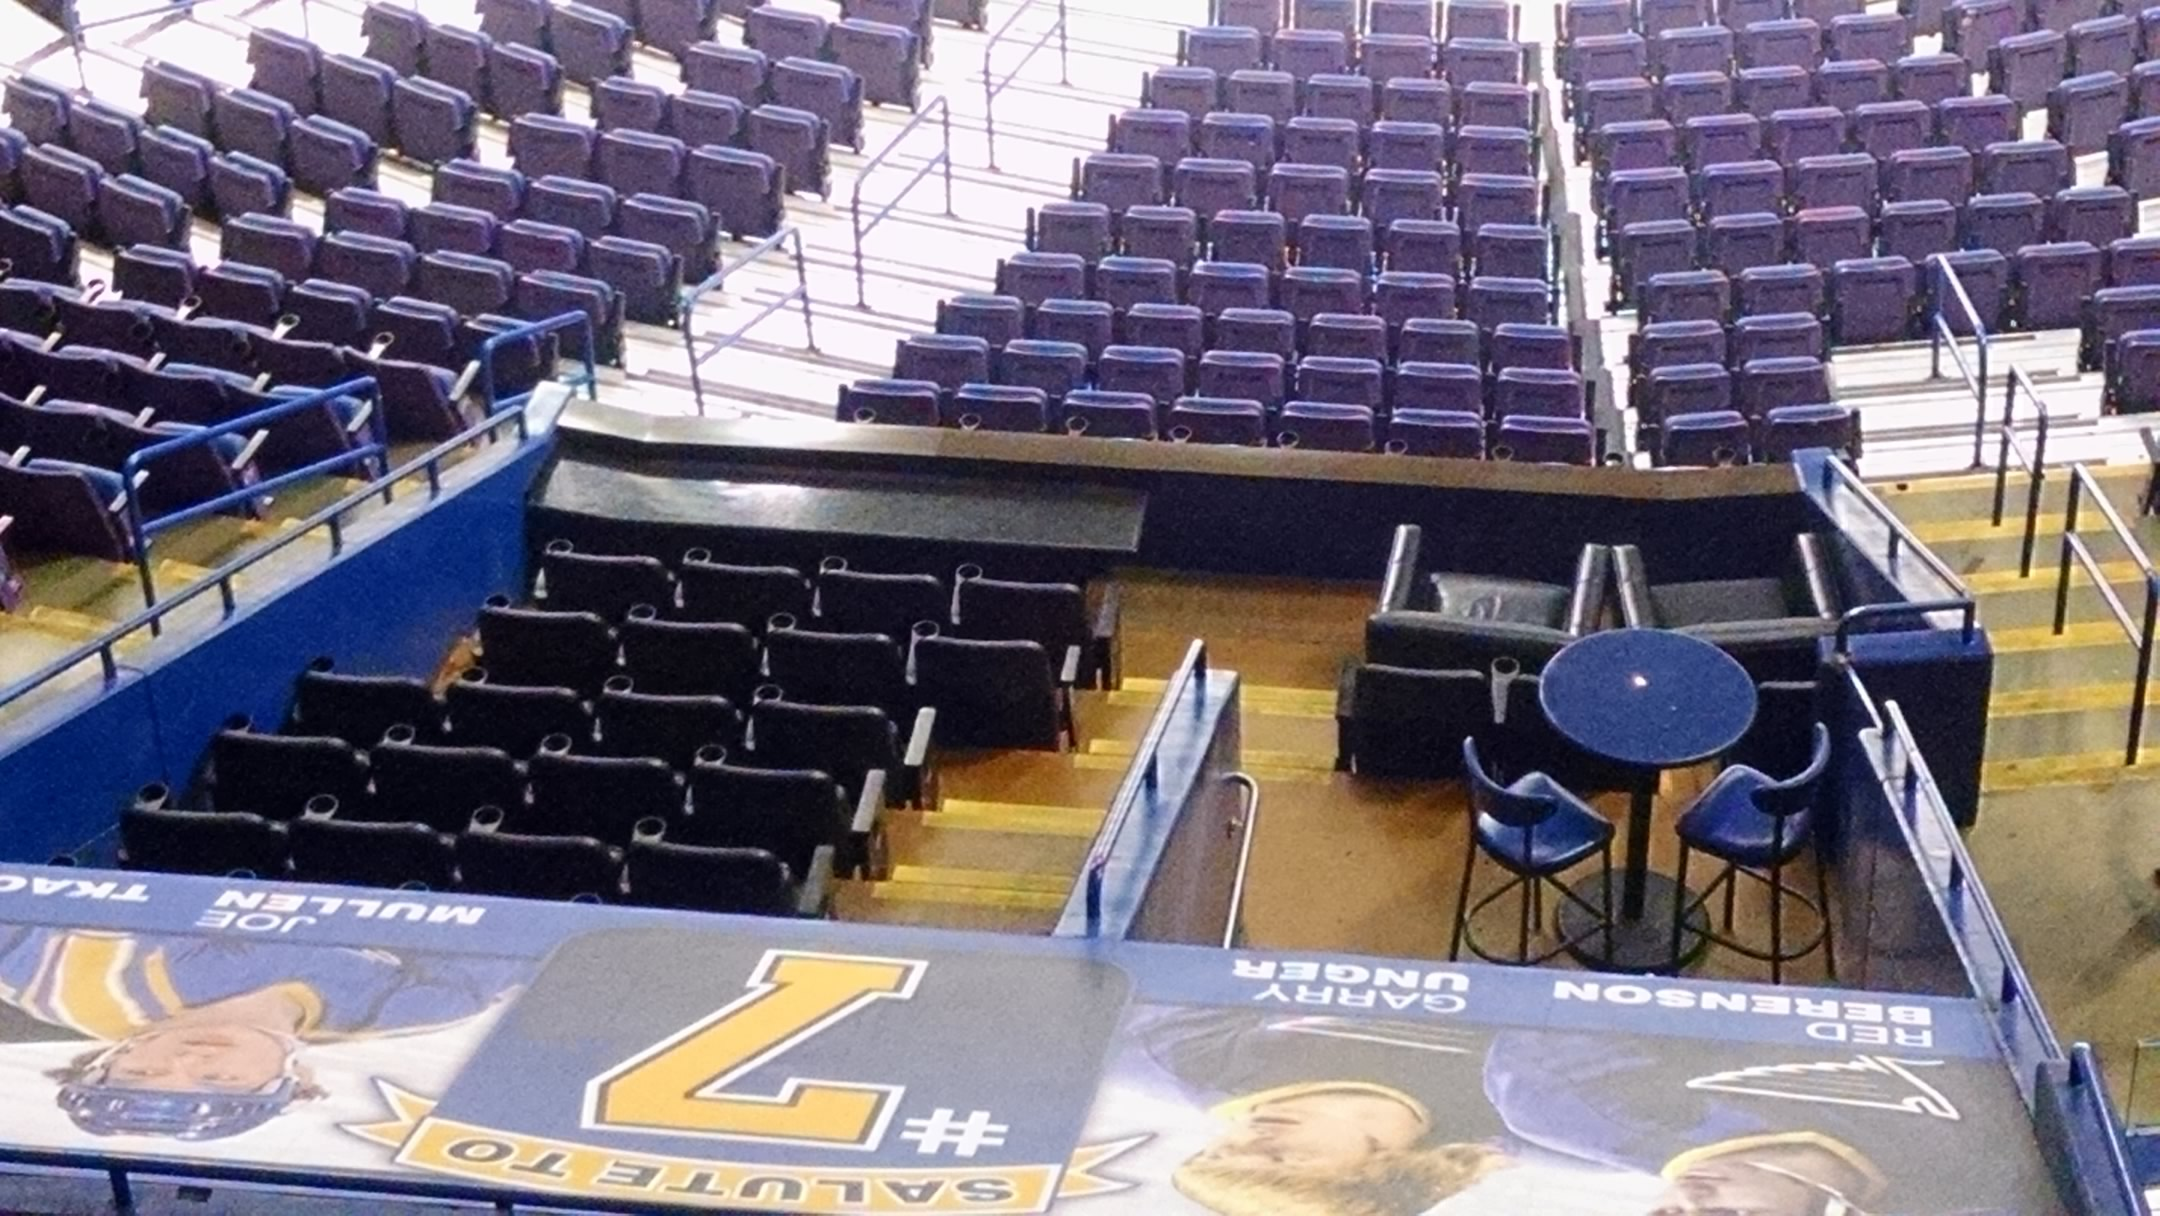 A limited number of club boxes are found on the lower level and include a few different seating options